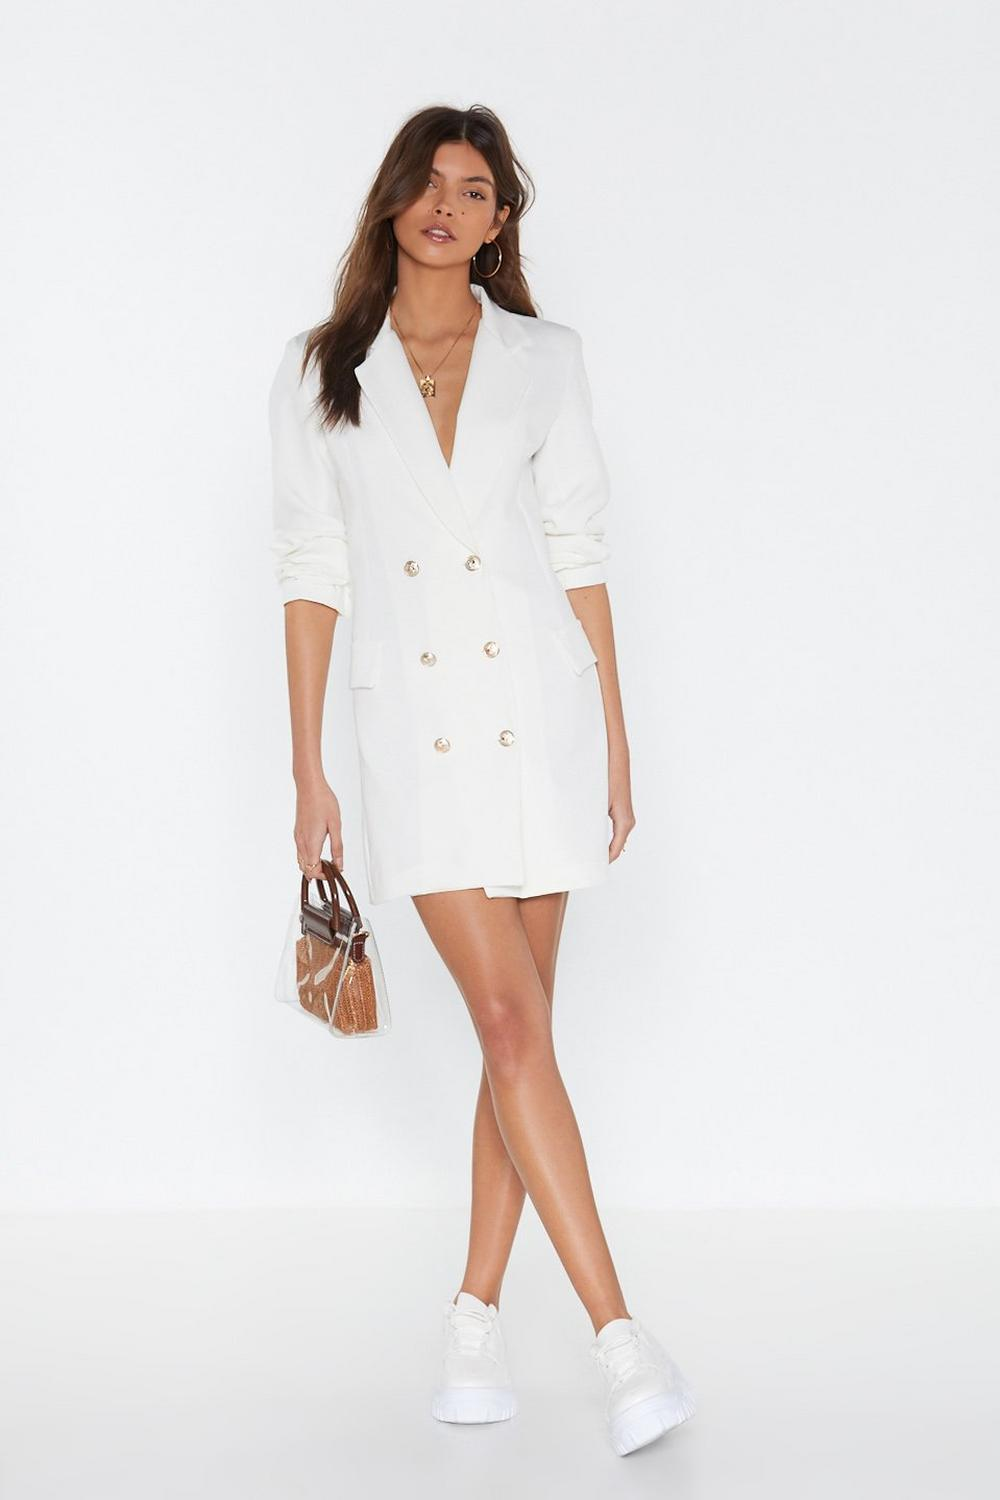 462d59af6a421 Own It Double Breasted Blazer Dress | Shop Clothes at Nasty Gal!